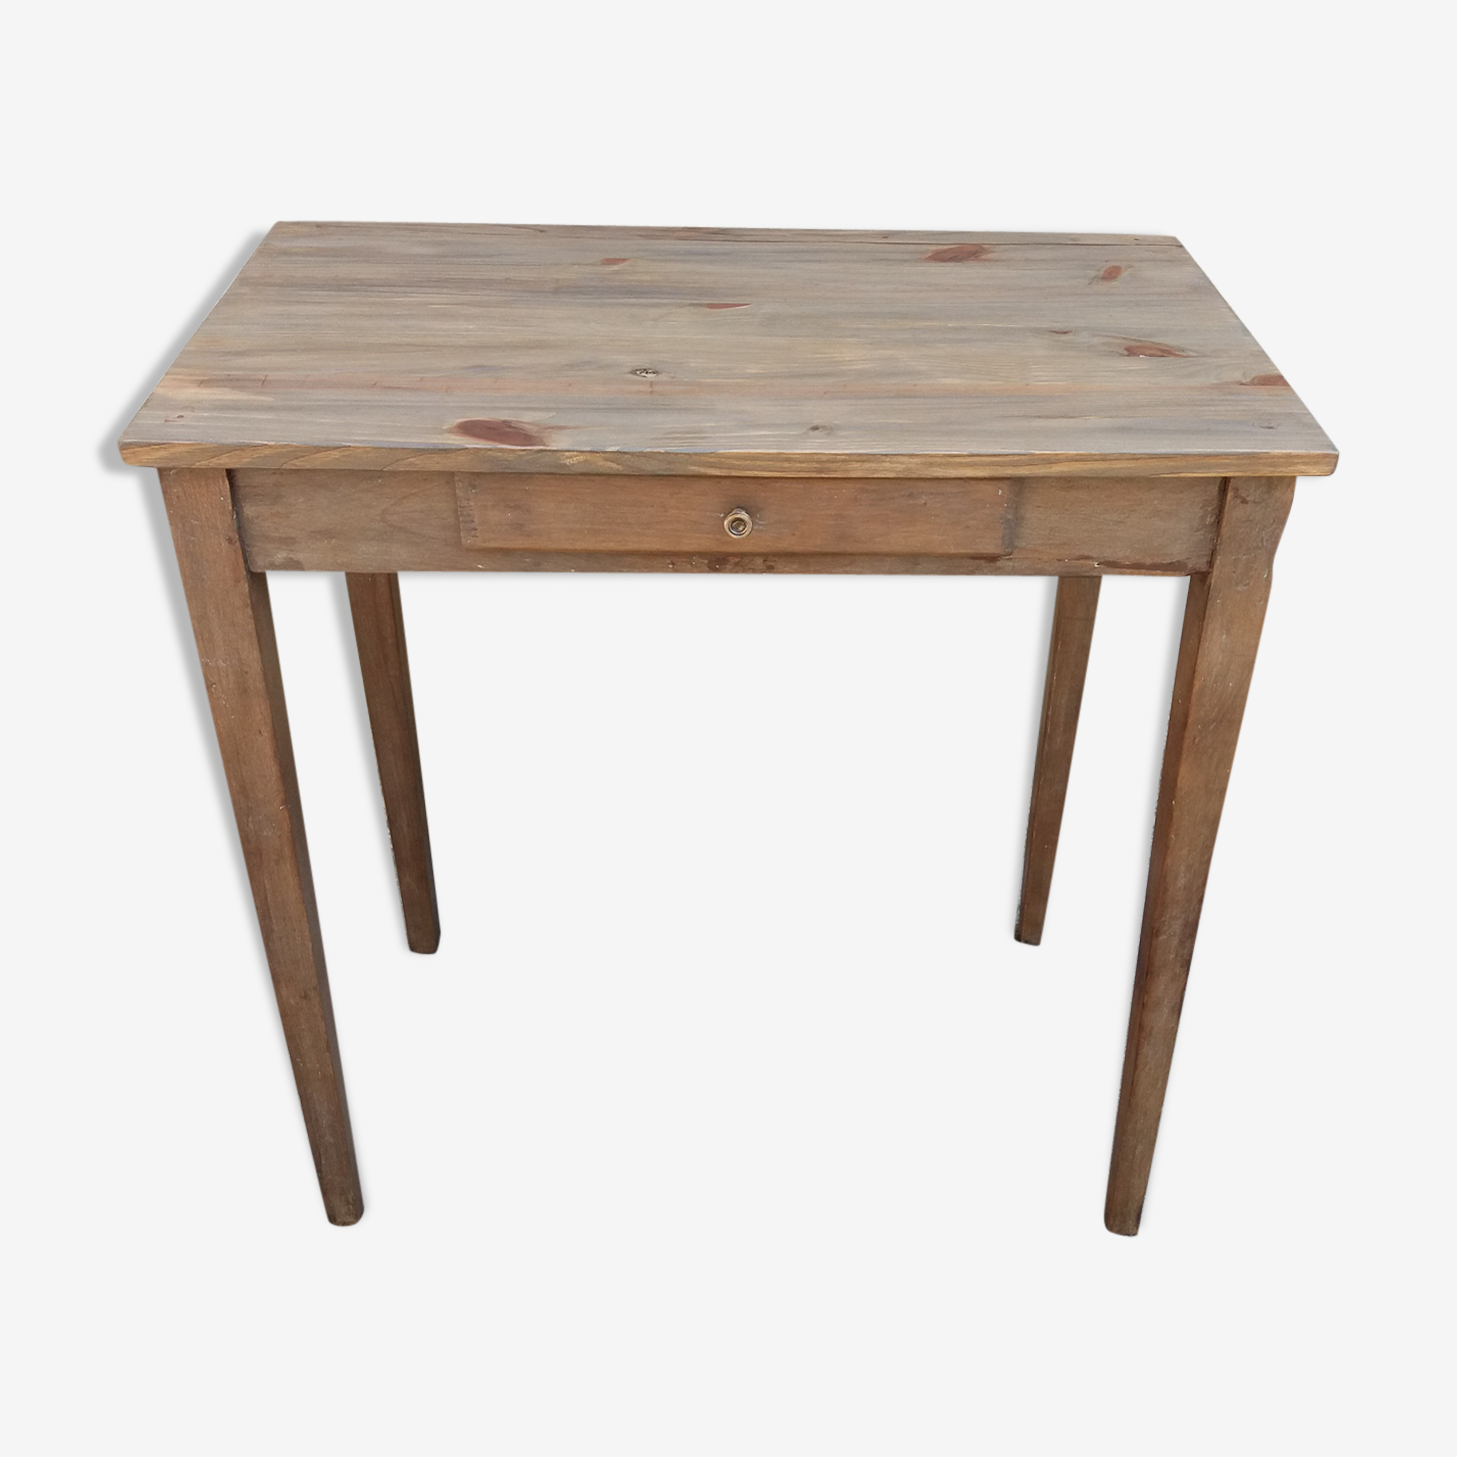 Table rustic extra